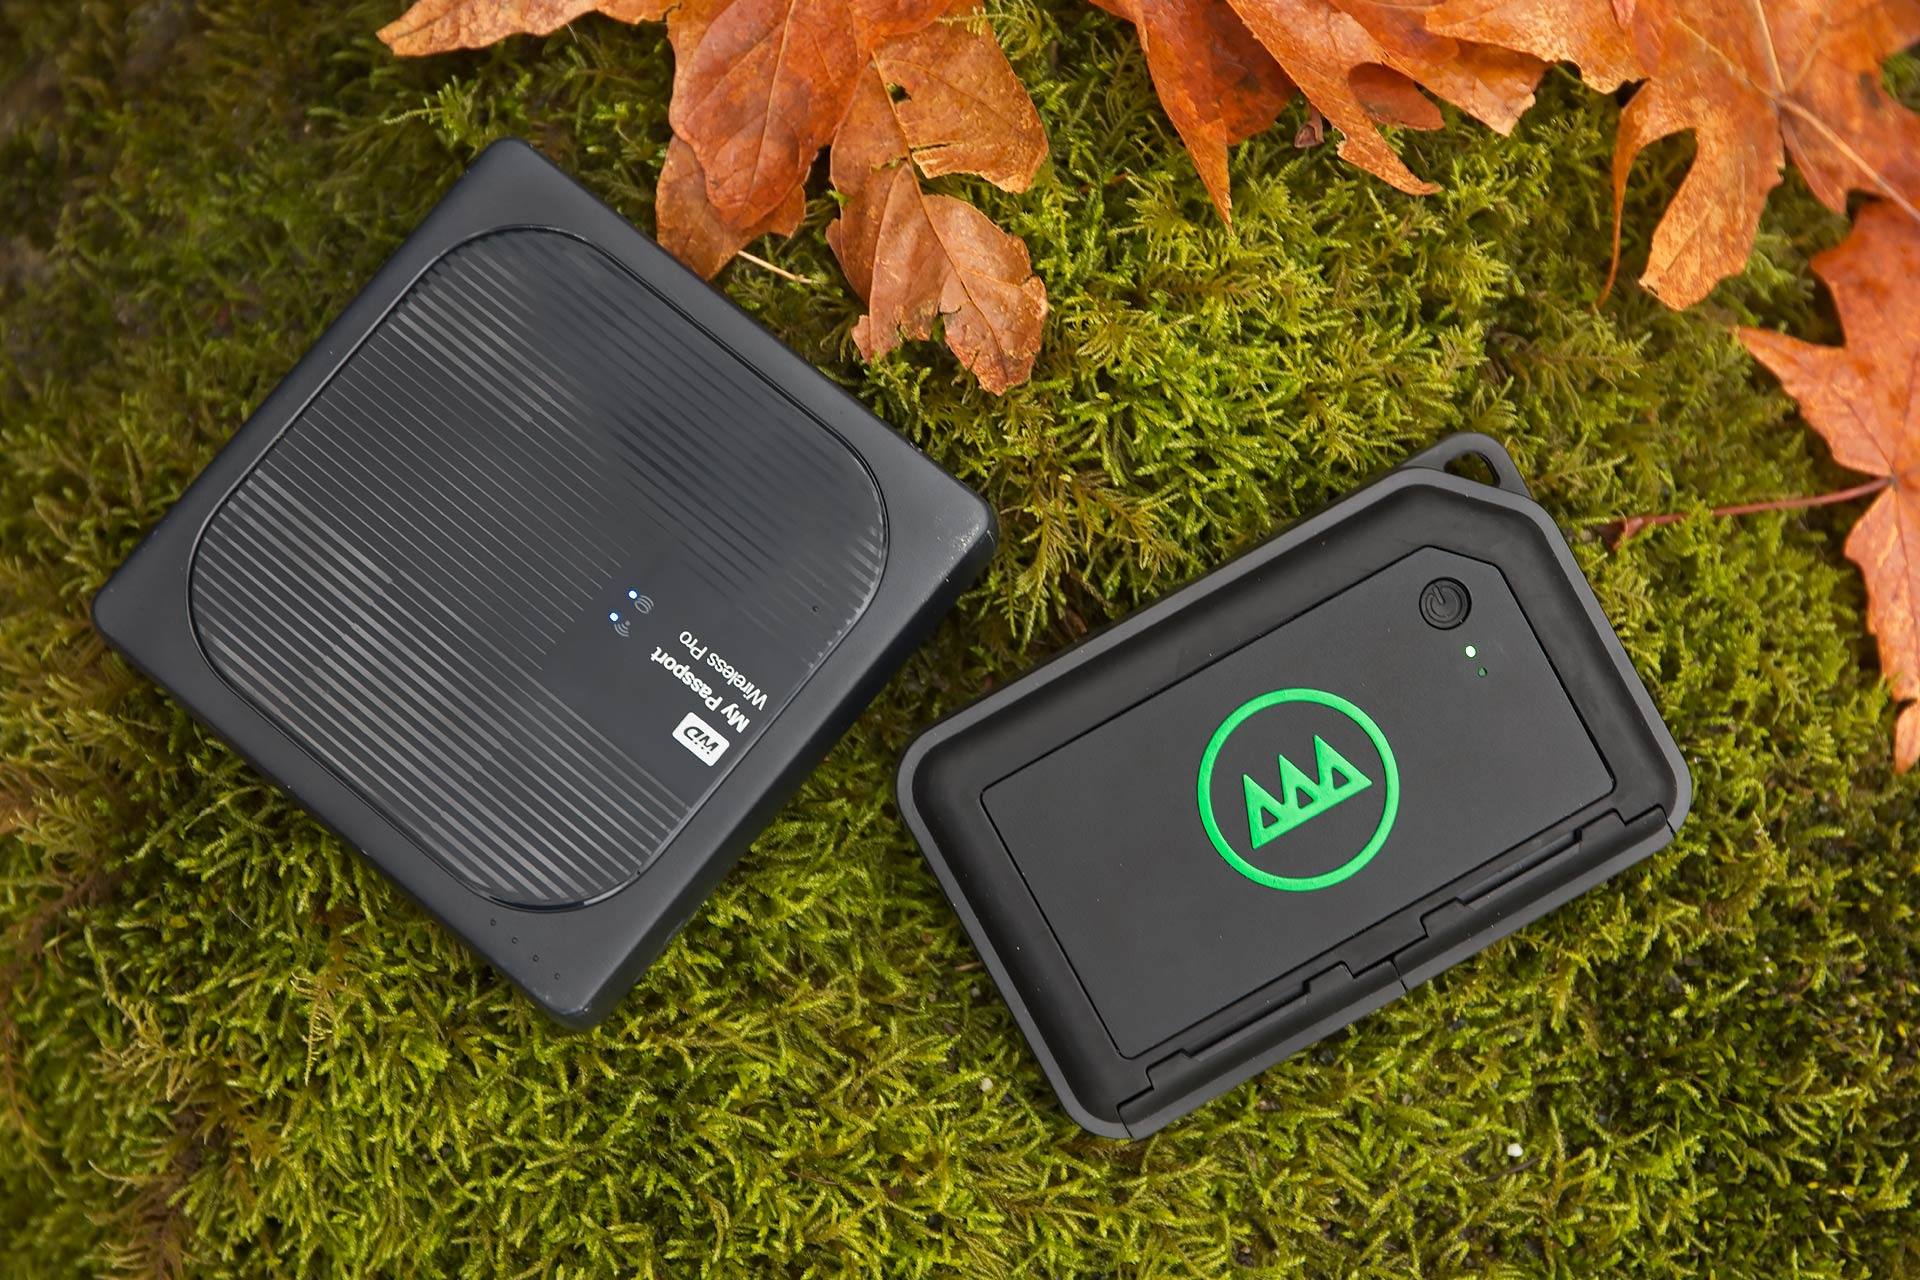 GNARBOX 256 vs WD My Passport Wireless Pro : Which is Best for